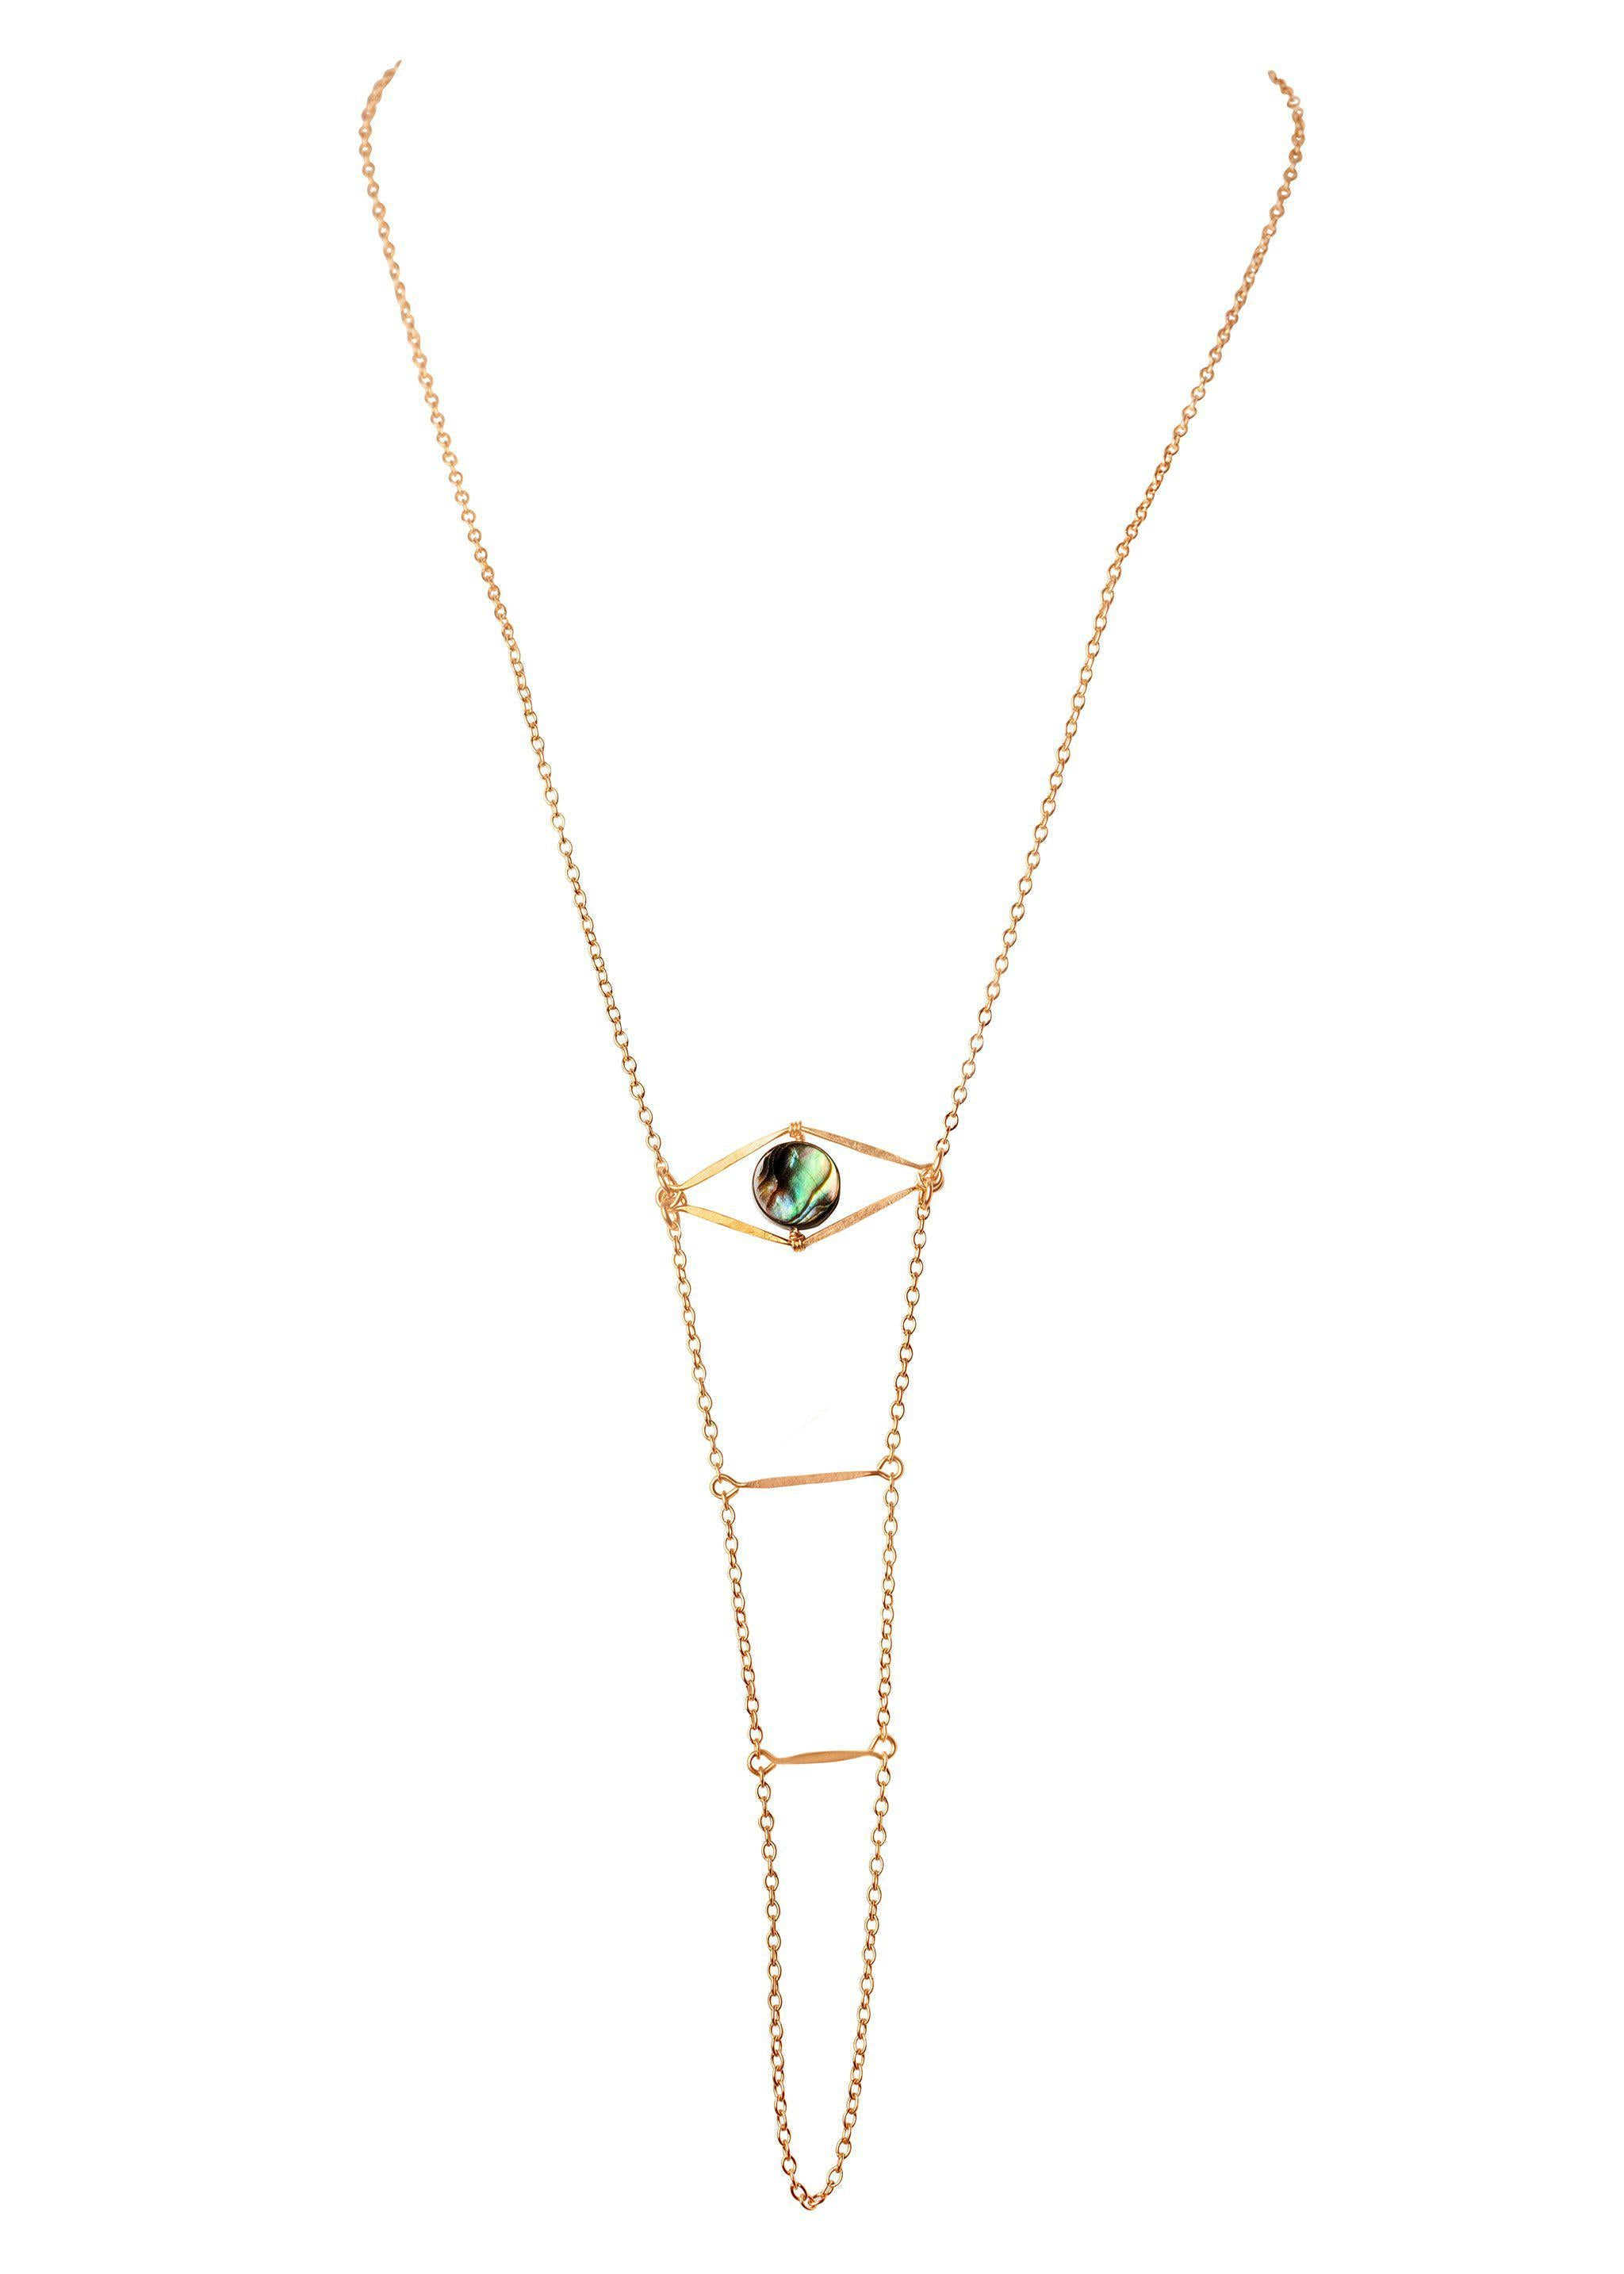 Abalone Cupid's Eye Handchain - Goldish